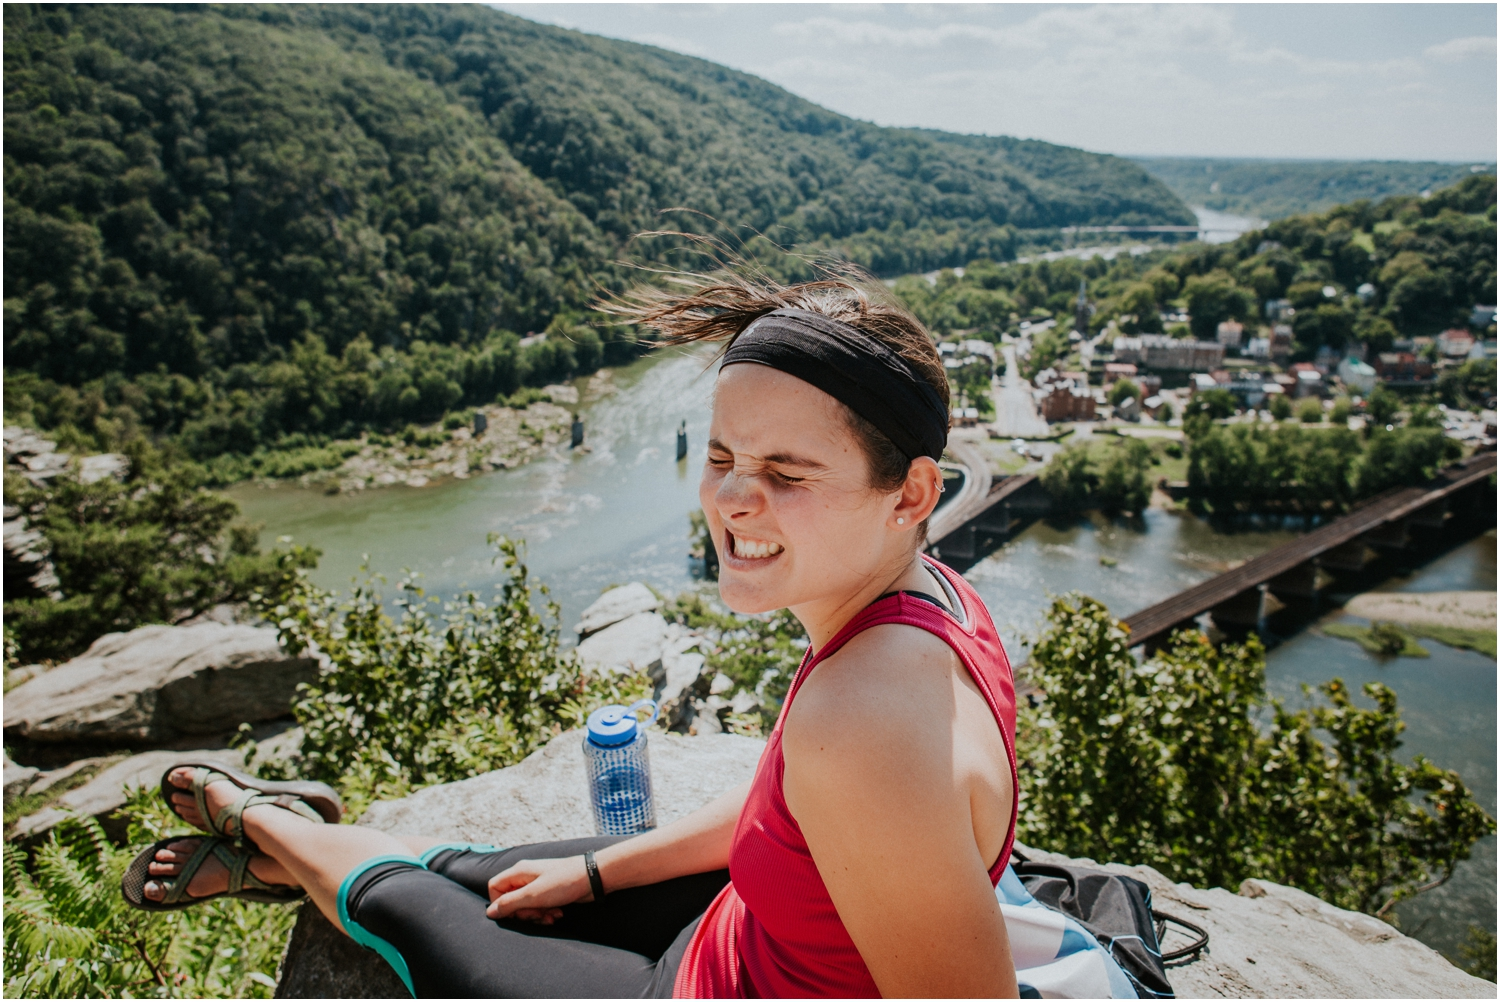 katy-sergent-photography-proposal-appalachian-trail-annapolis-rocks-adventurous-wedding-couples-intimate-elopement-hiking-backpacking-camping-photographer-johnson-city-tn-northeast-tennessee_0025.jpg